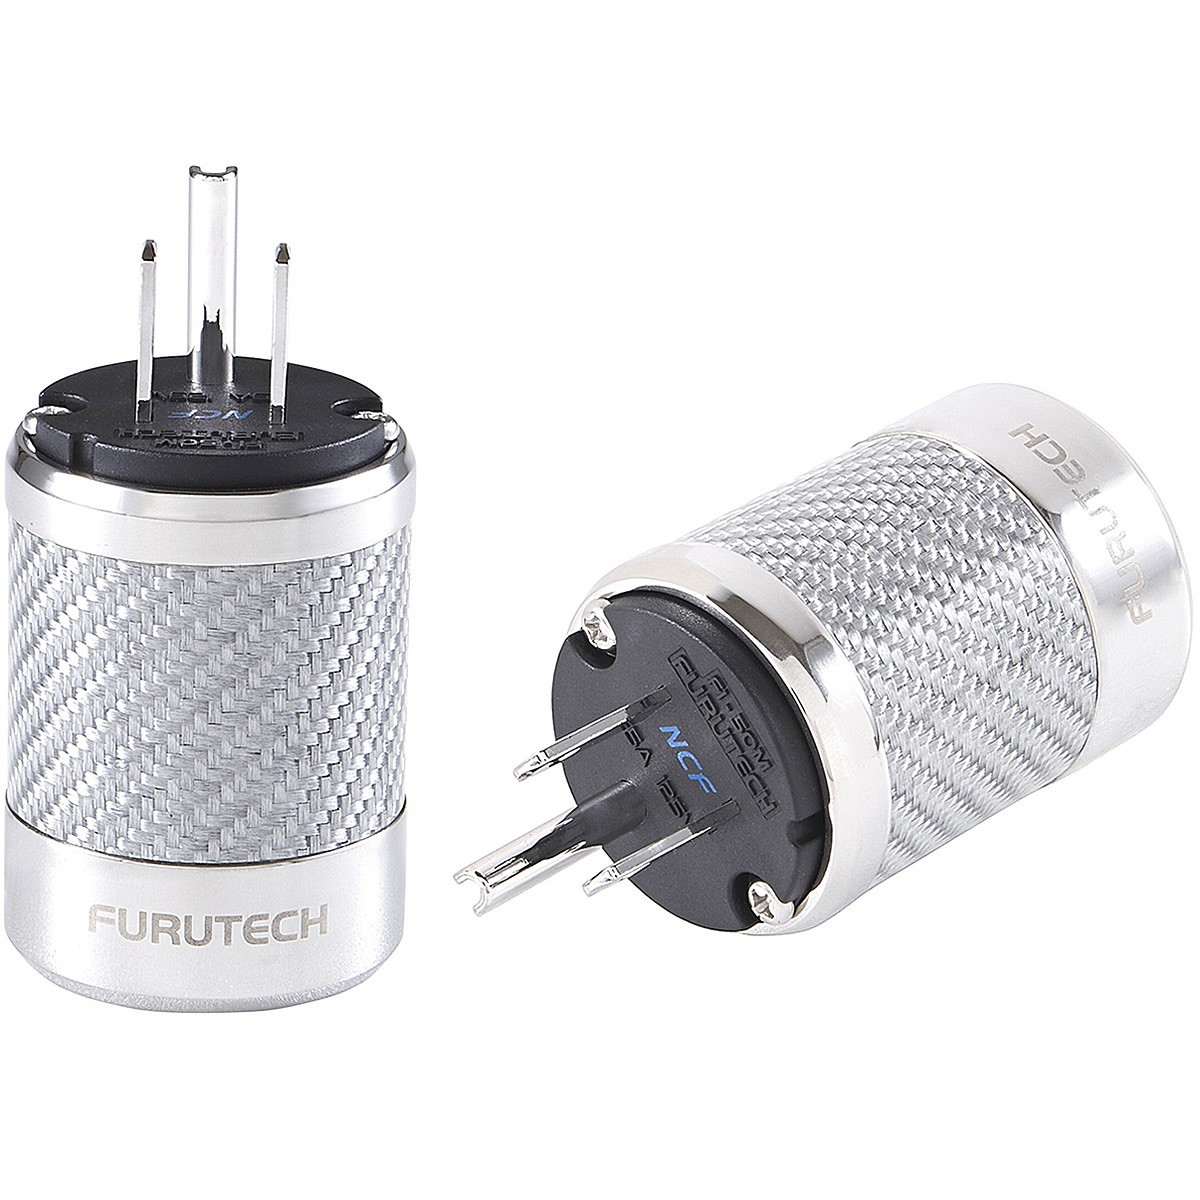 FURUTECH FI-50M NCF (R) Rhodium plated NEMA US Power plug Carbon